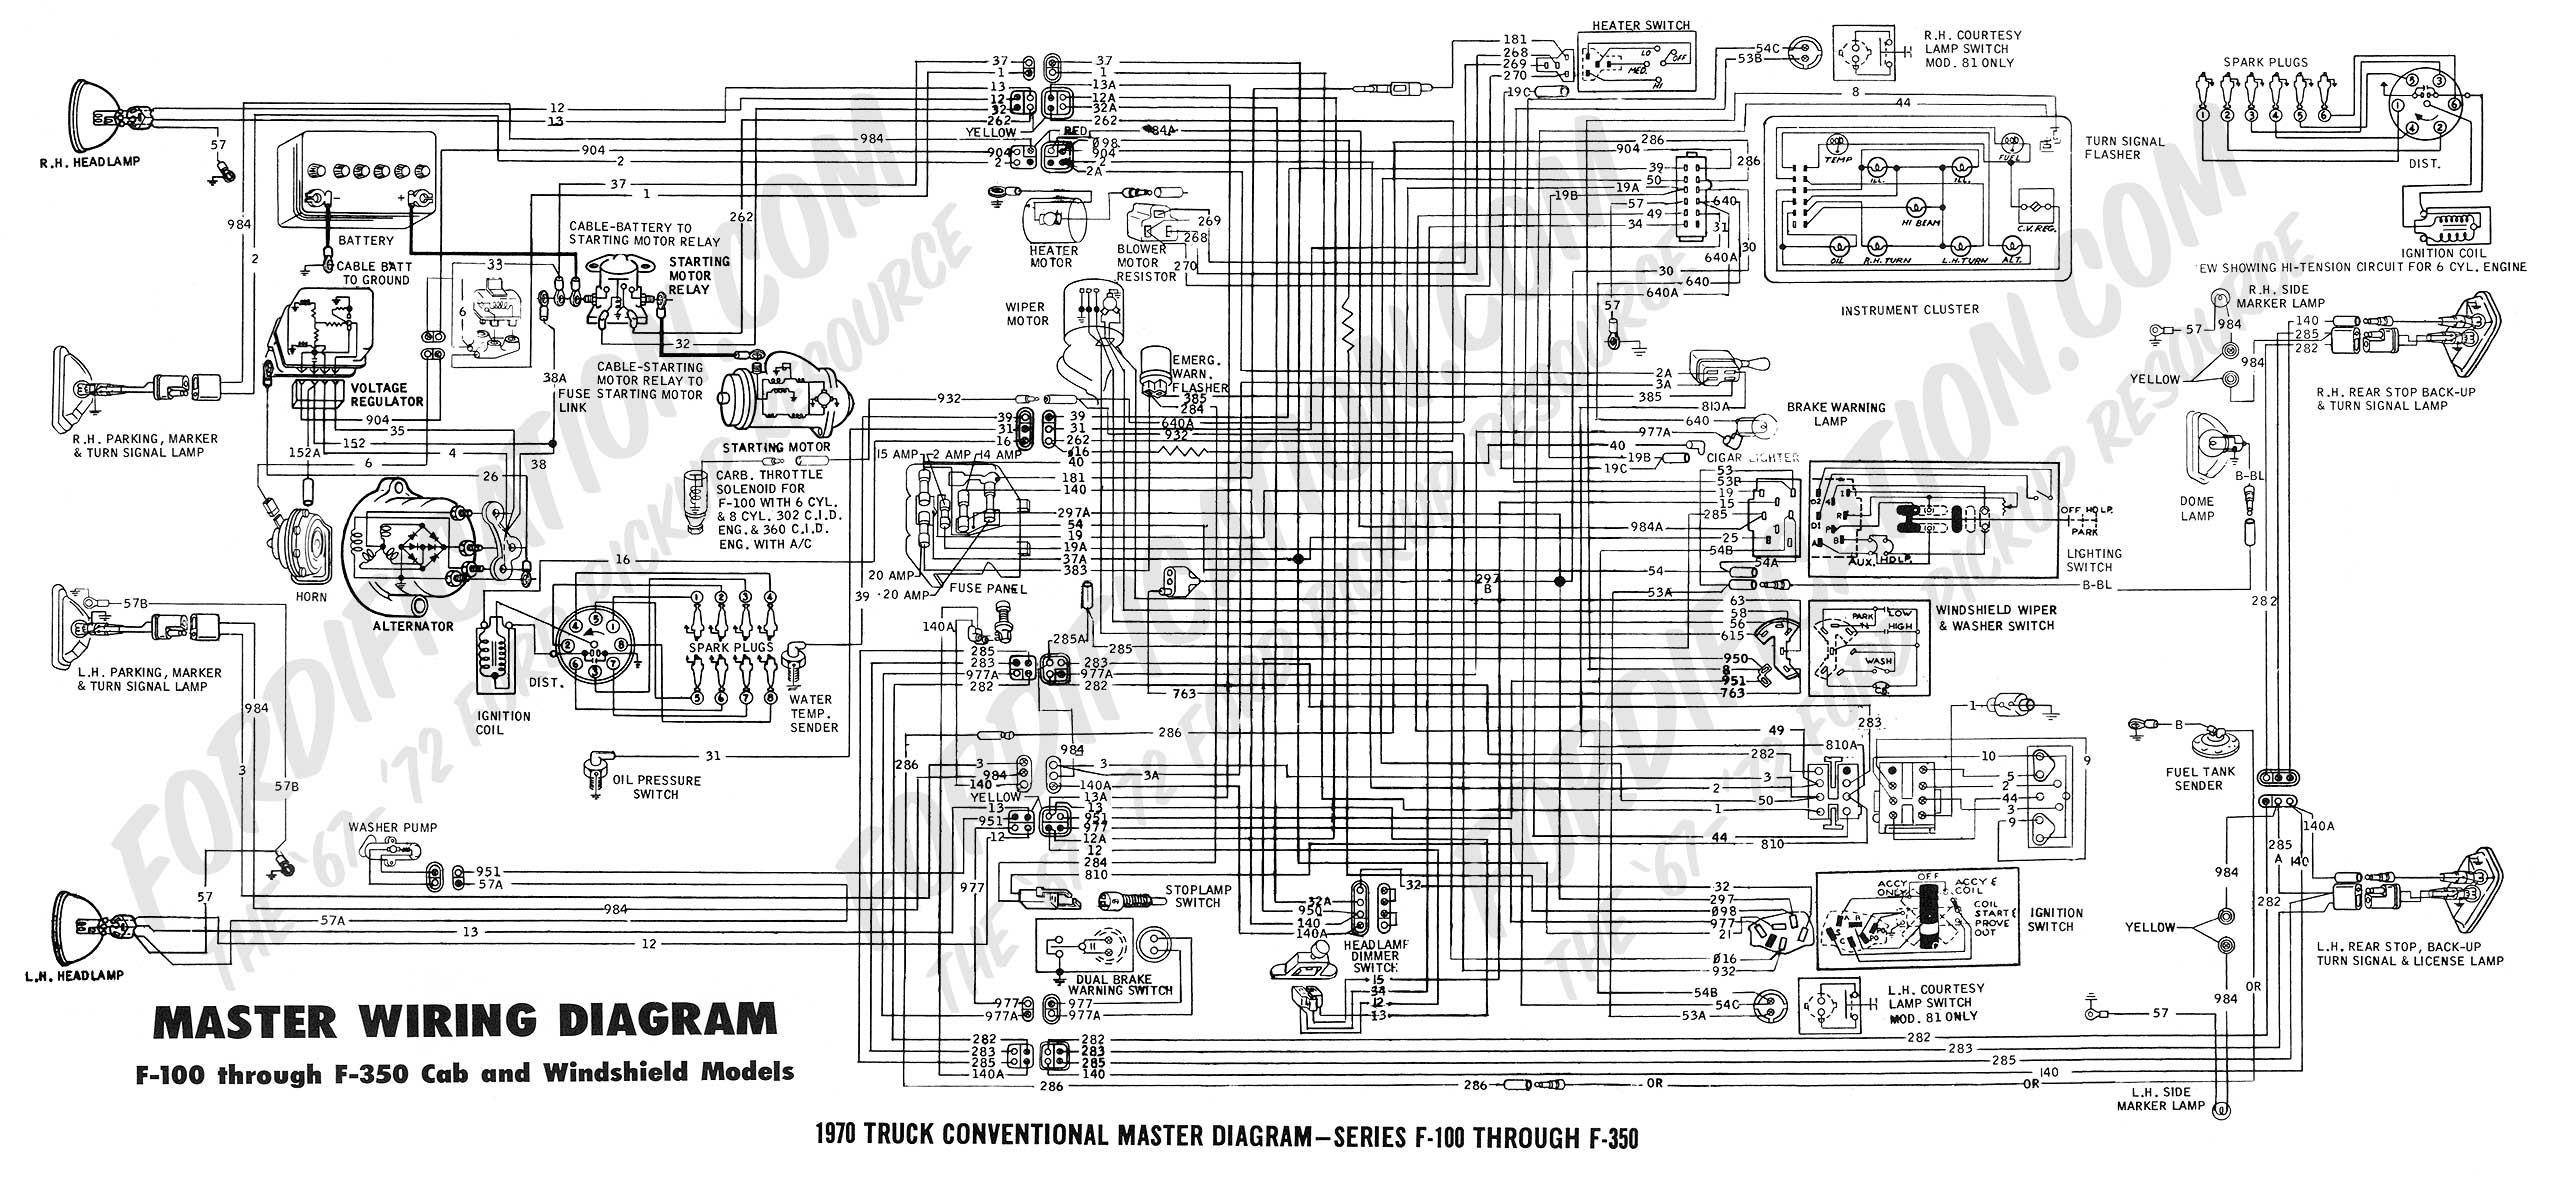 Wiring Diagram For 1979 Cadillac 1956 Harness Ford Truck Technical Drawings And Schematics Section H Diagrams 1965